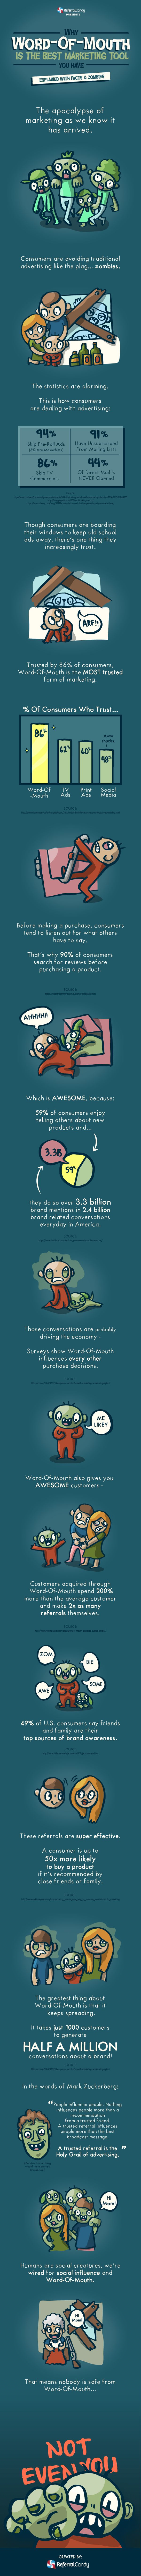 Why Word-Of-Mouth Is The BEST Marketing Tool You Have (Explained With Facts & Zombies) [INFOGRAPHIC] - Word-of-Mouth and Referral Marketing Blog